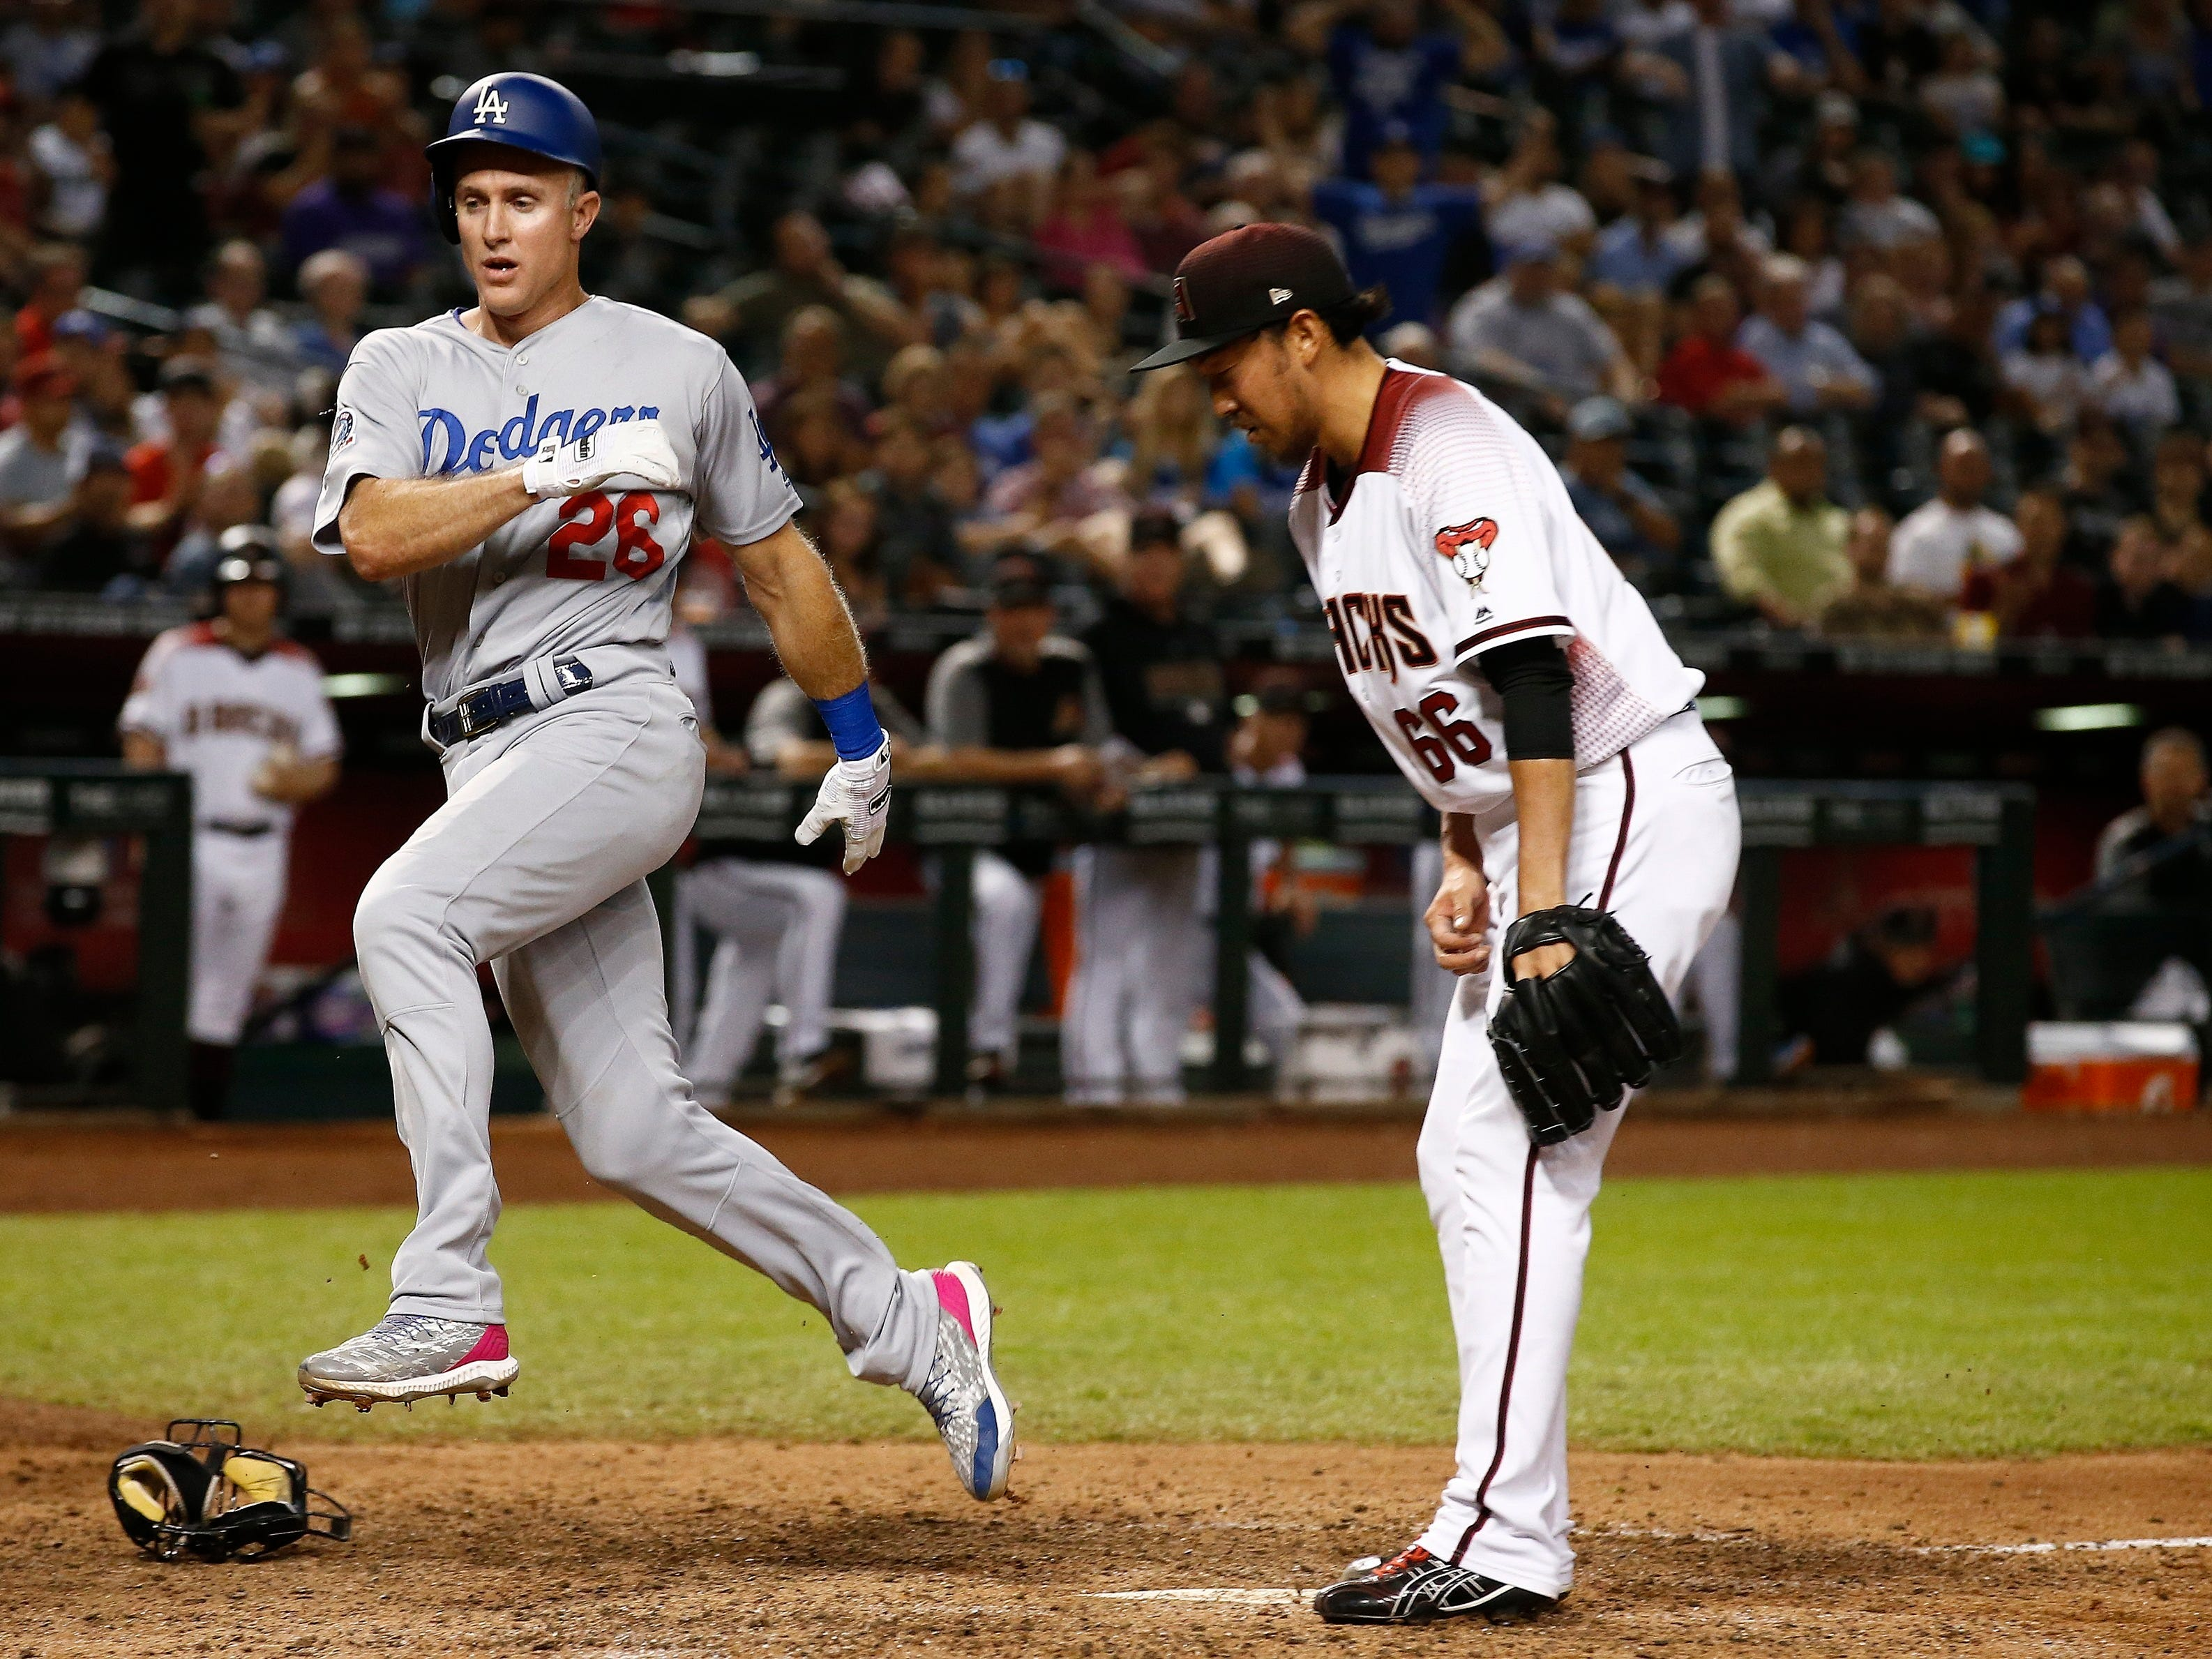 Los Angeles Dodgers' Chase Utley (26) scores a run on a wild pitch by Arizona Diamondbacks relief pitcher Yoshihisa Hirano (66), of Japan, during the ninth inning of a baseball game, Monday, Sept. 24, 2018, in Phoenix. The Dodgers defeated the Diamondbacks 7-4. (AP Photo/Ross D. Franklin)